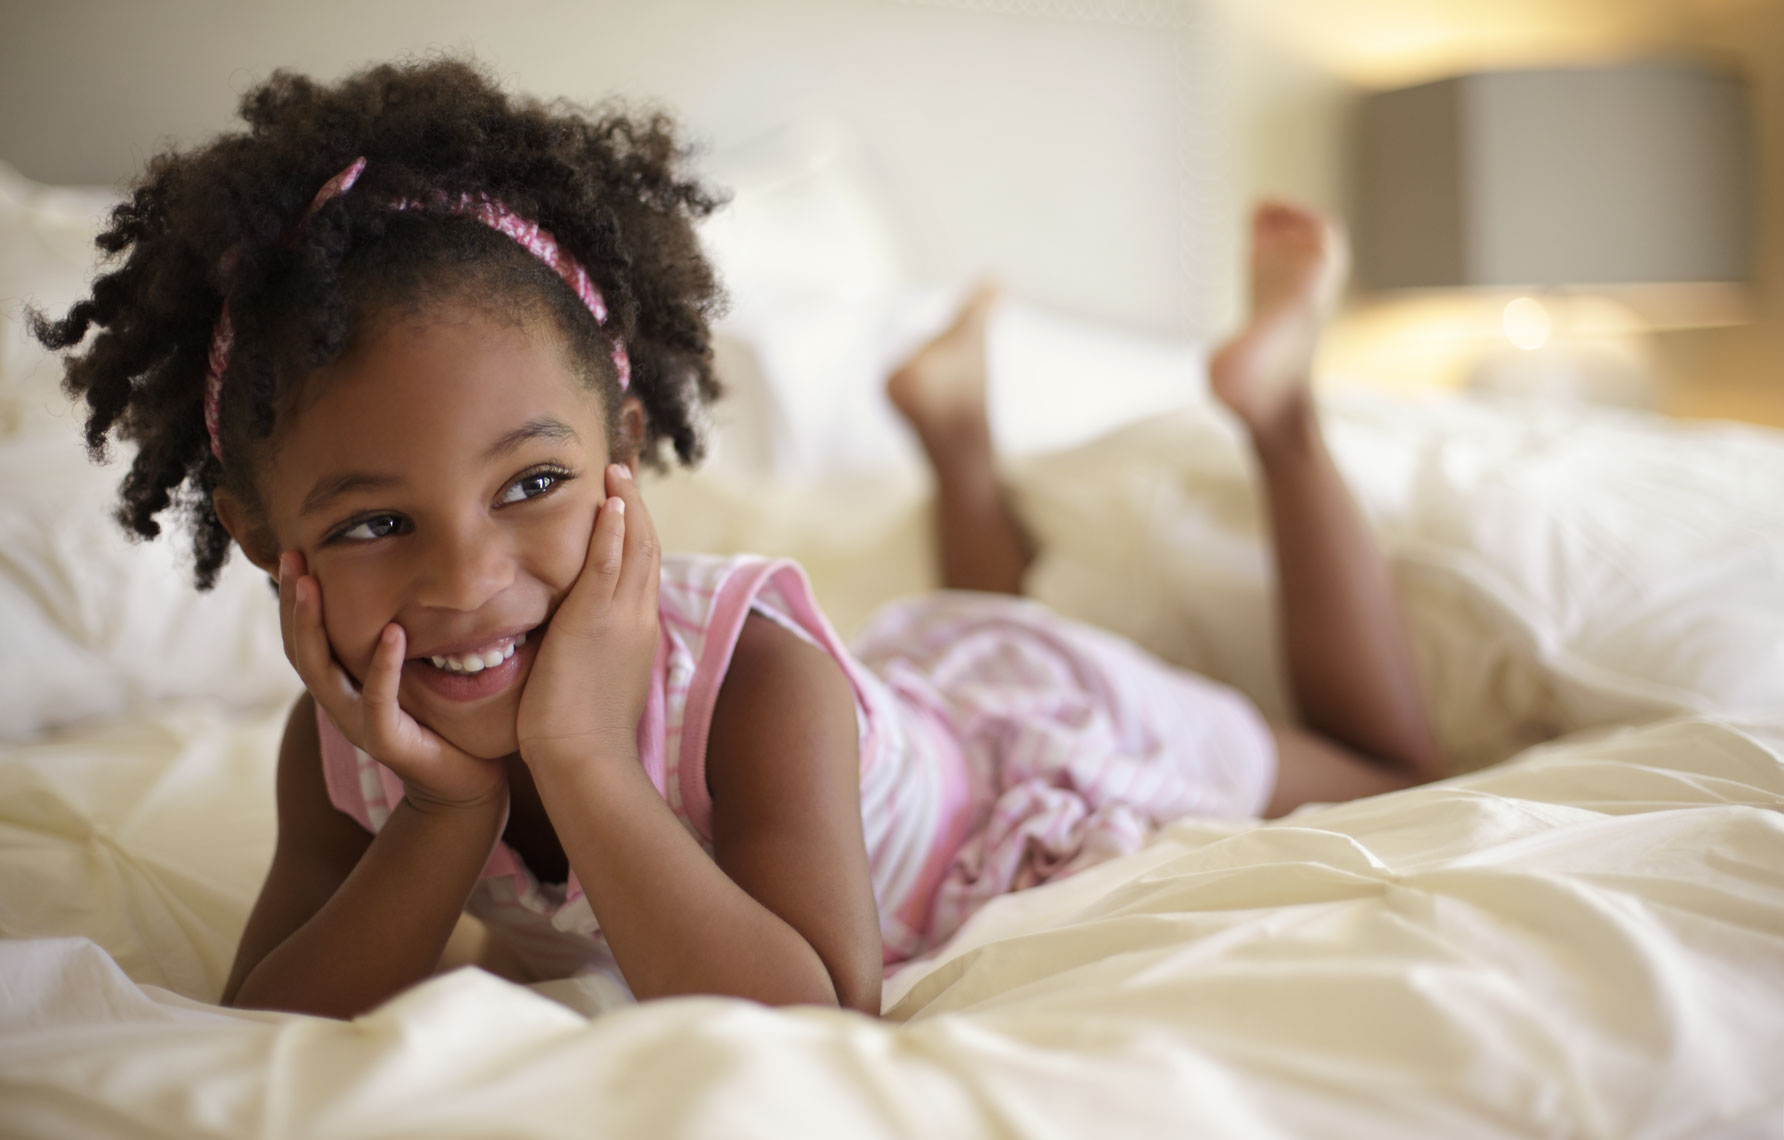 Environmental Portrait Of Young Girl On Bed